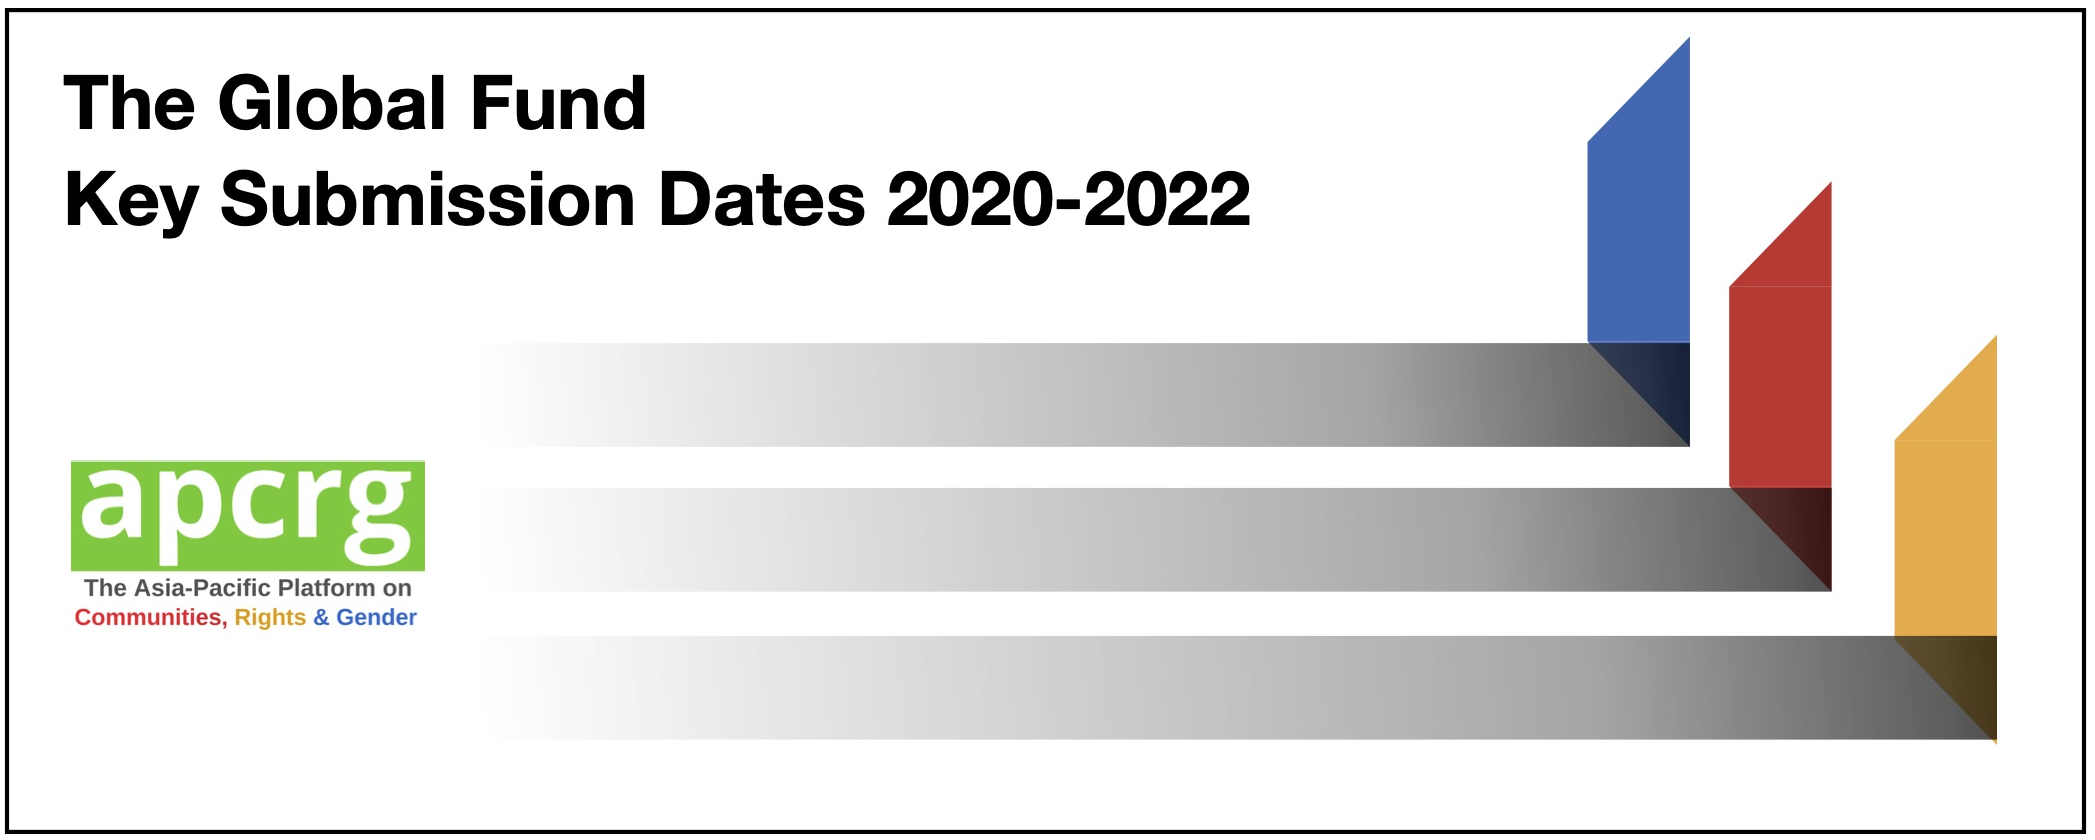 Key Submission Dates 2020-2022